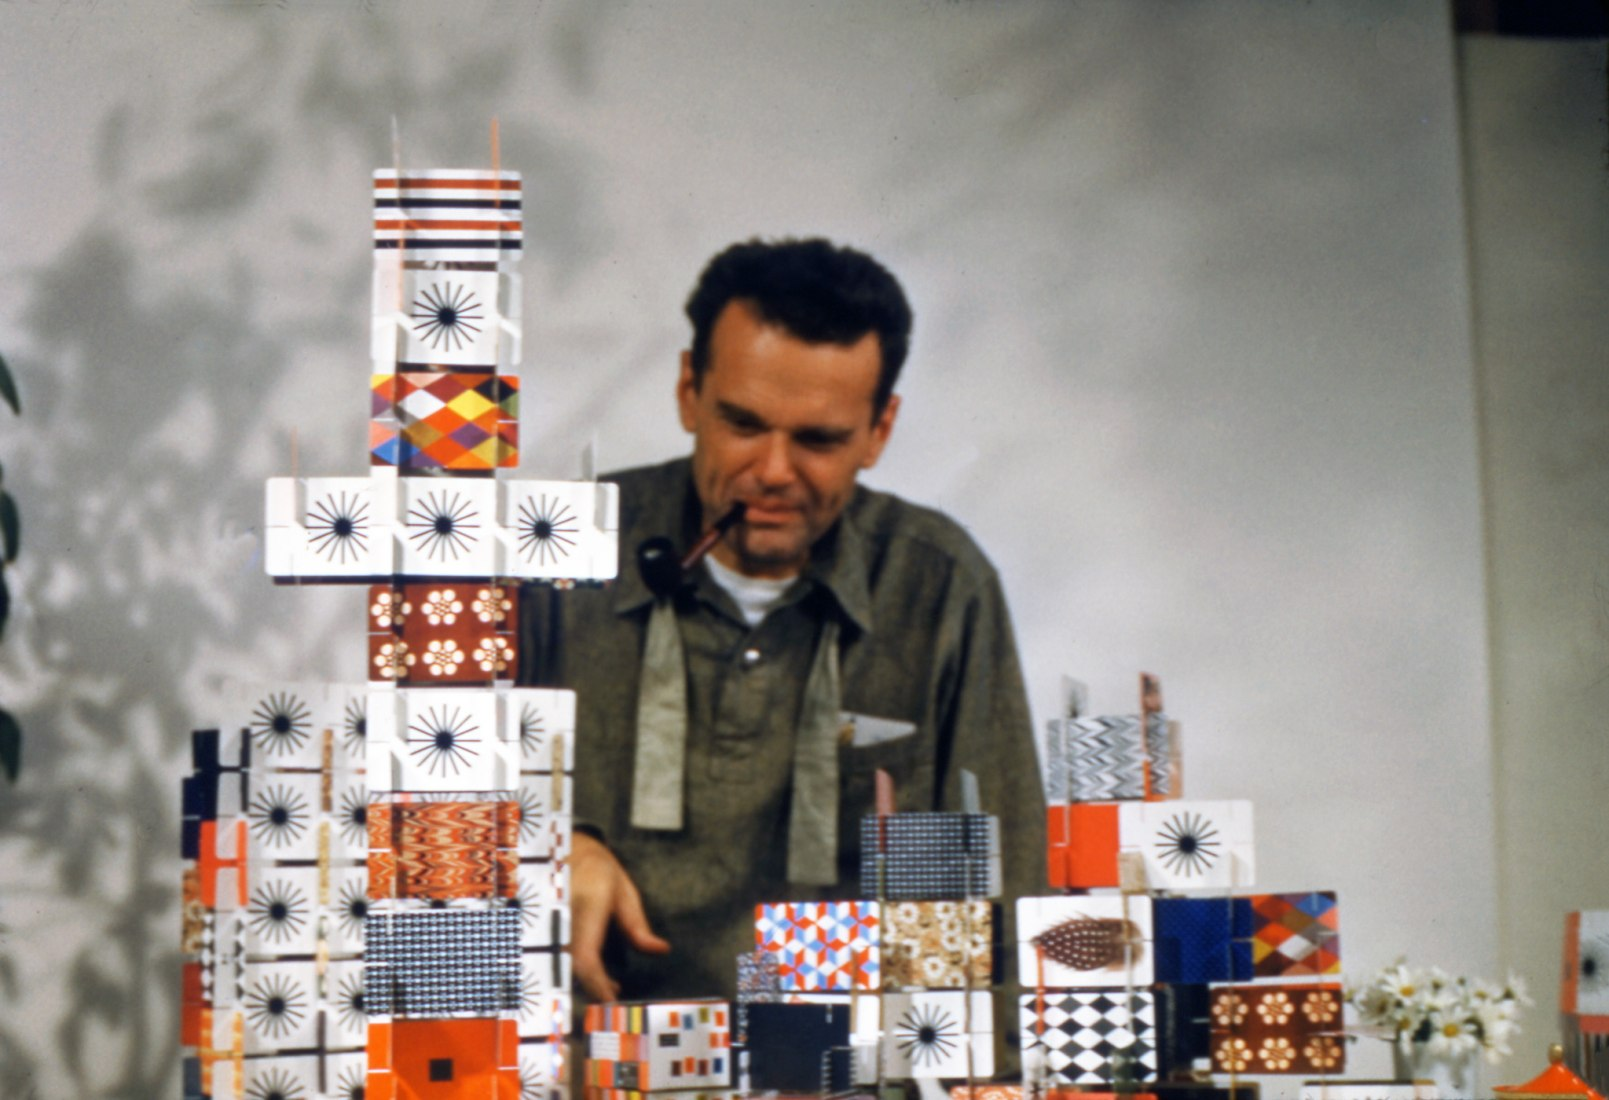 Charles Eames playing with the »House of Cards«, Pattern Deck, 1952. Photograph © Eames Office LLC. Image courtesy of Vitra.